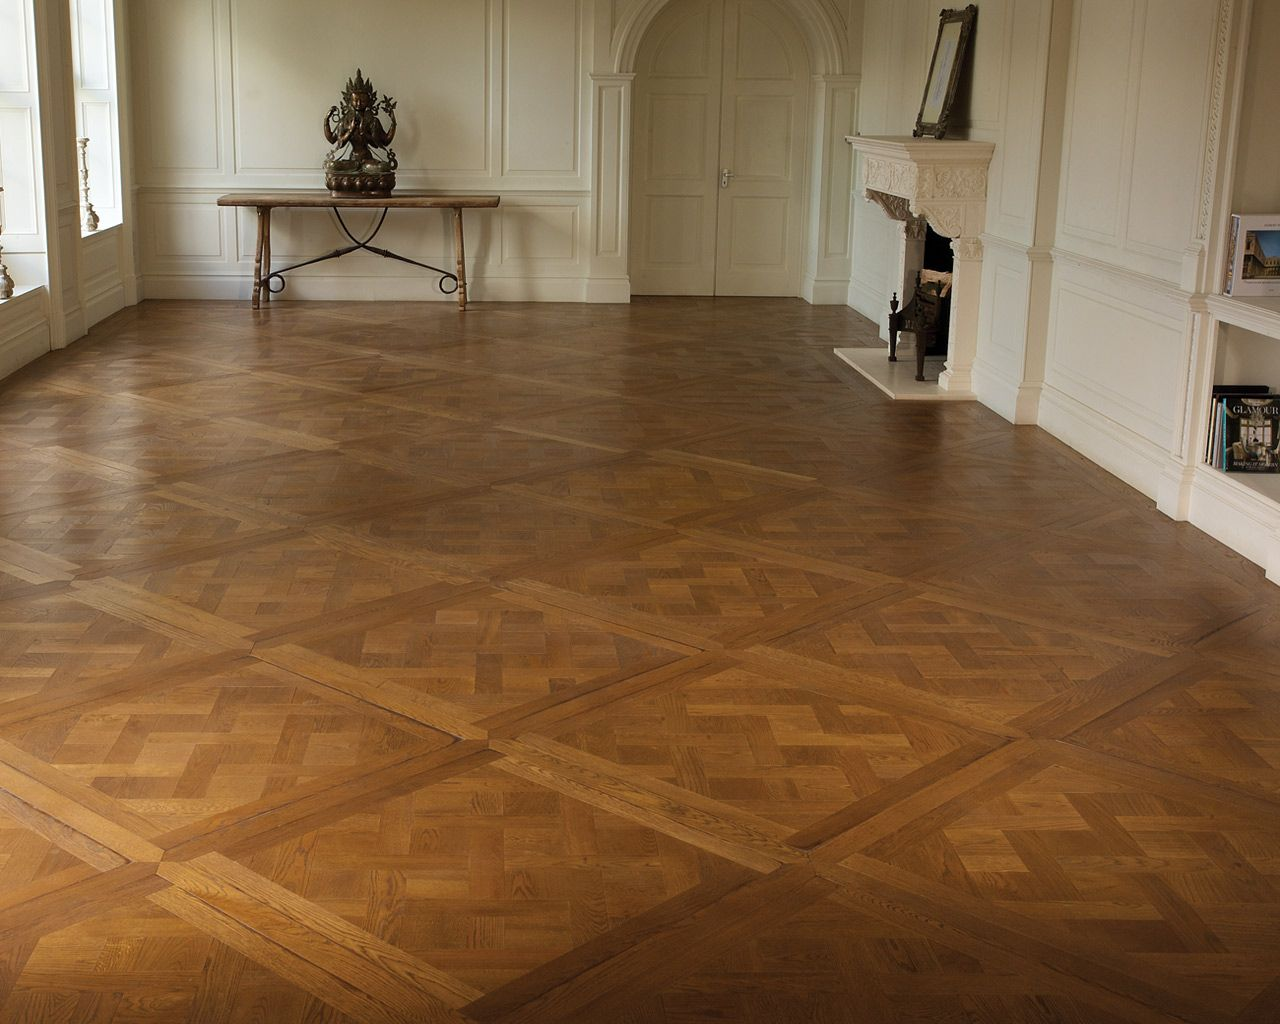 parquet versailles cerca con google idee per la casa pinterest versailles wood stone. Black Bedroom Furniture Sets. Home Design Ideas